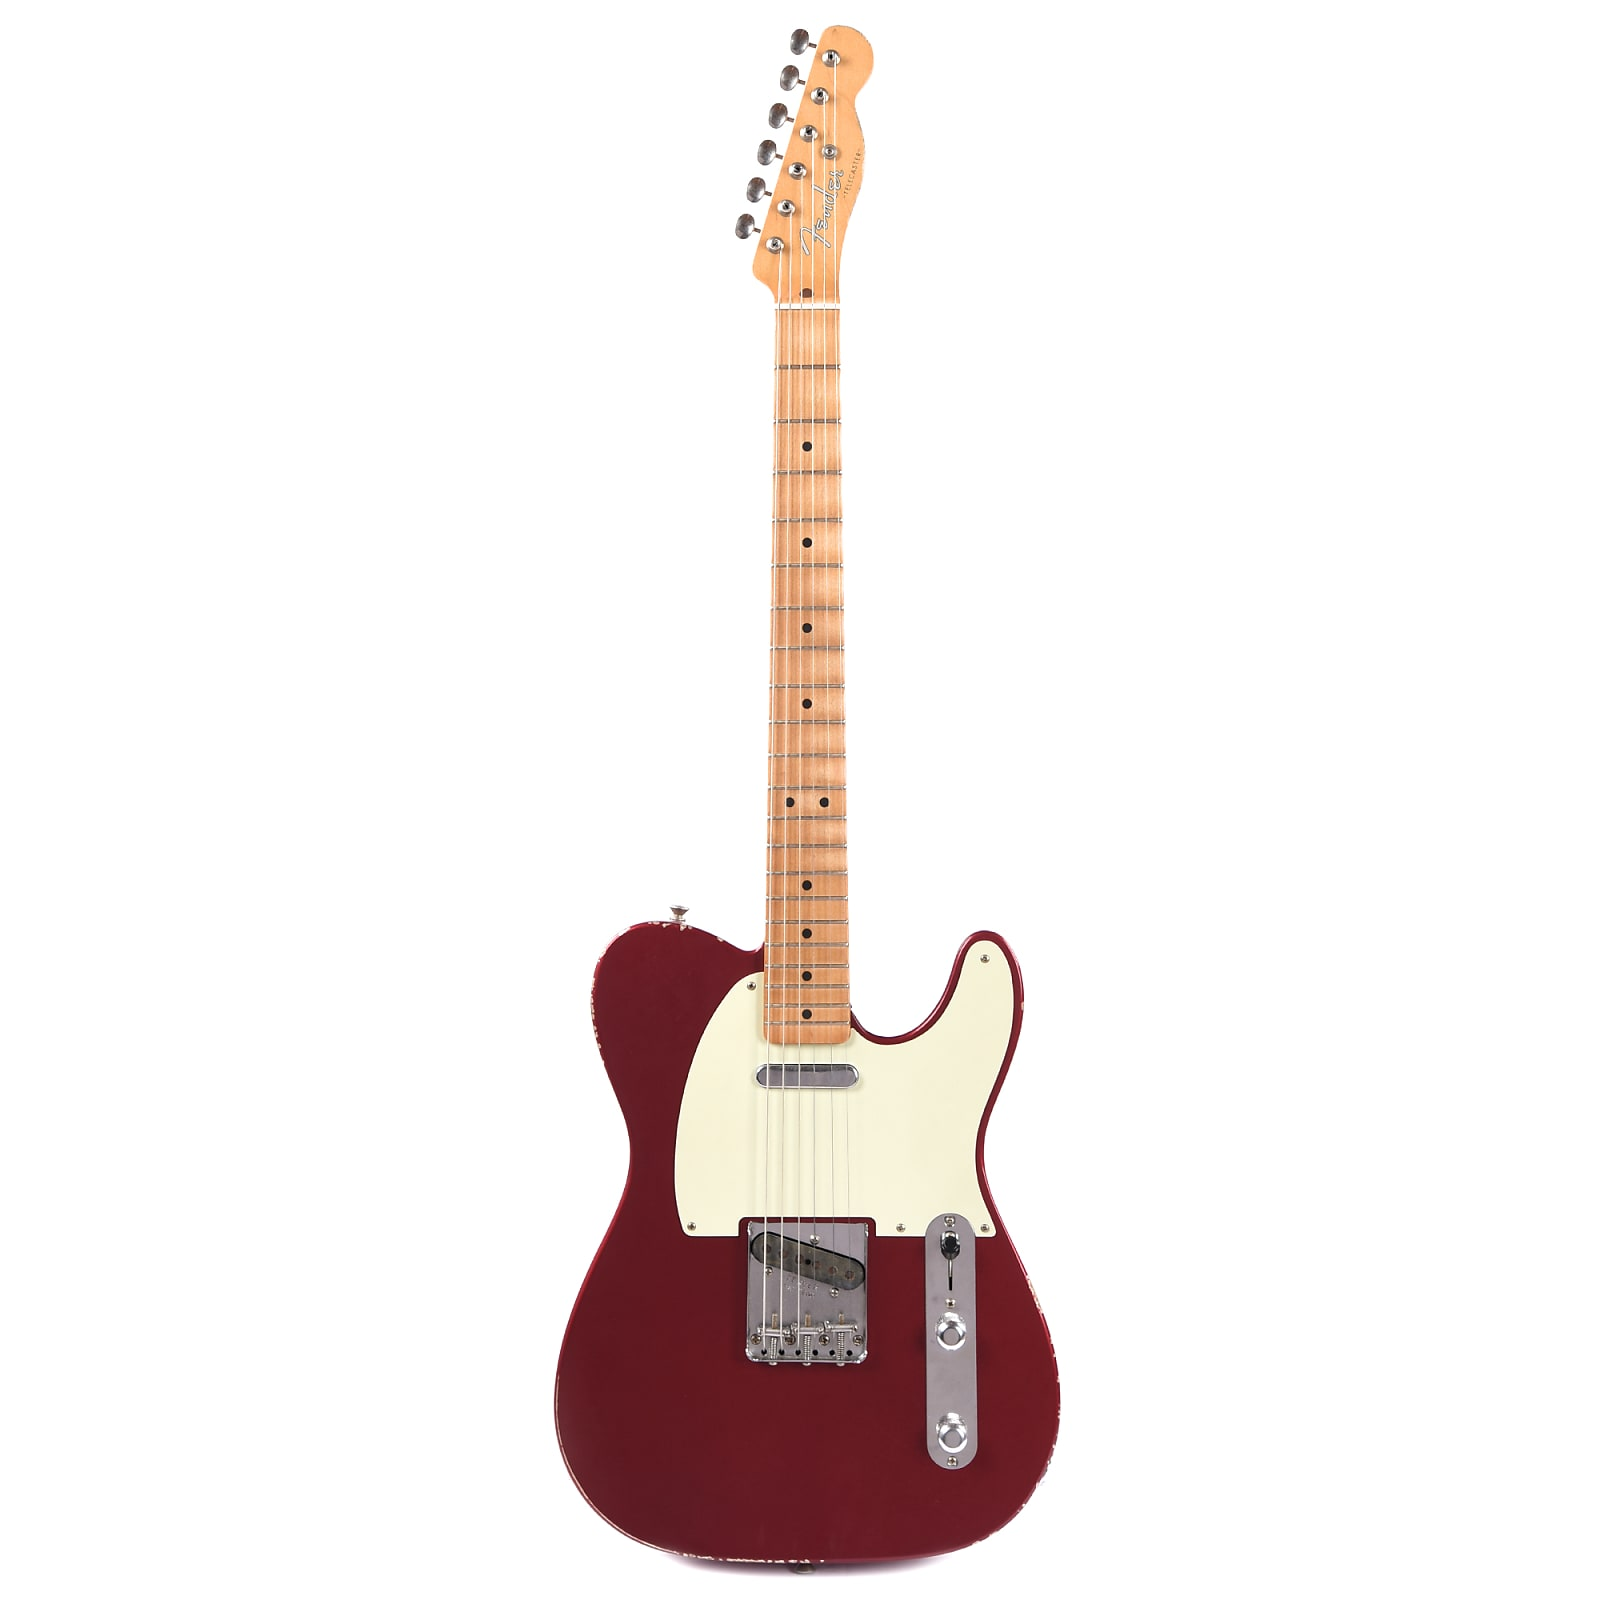 Fender Road Worn '50s Telecaster Candy Apple Red (CME Exclusive)